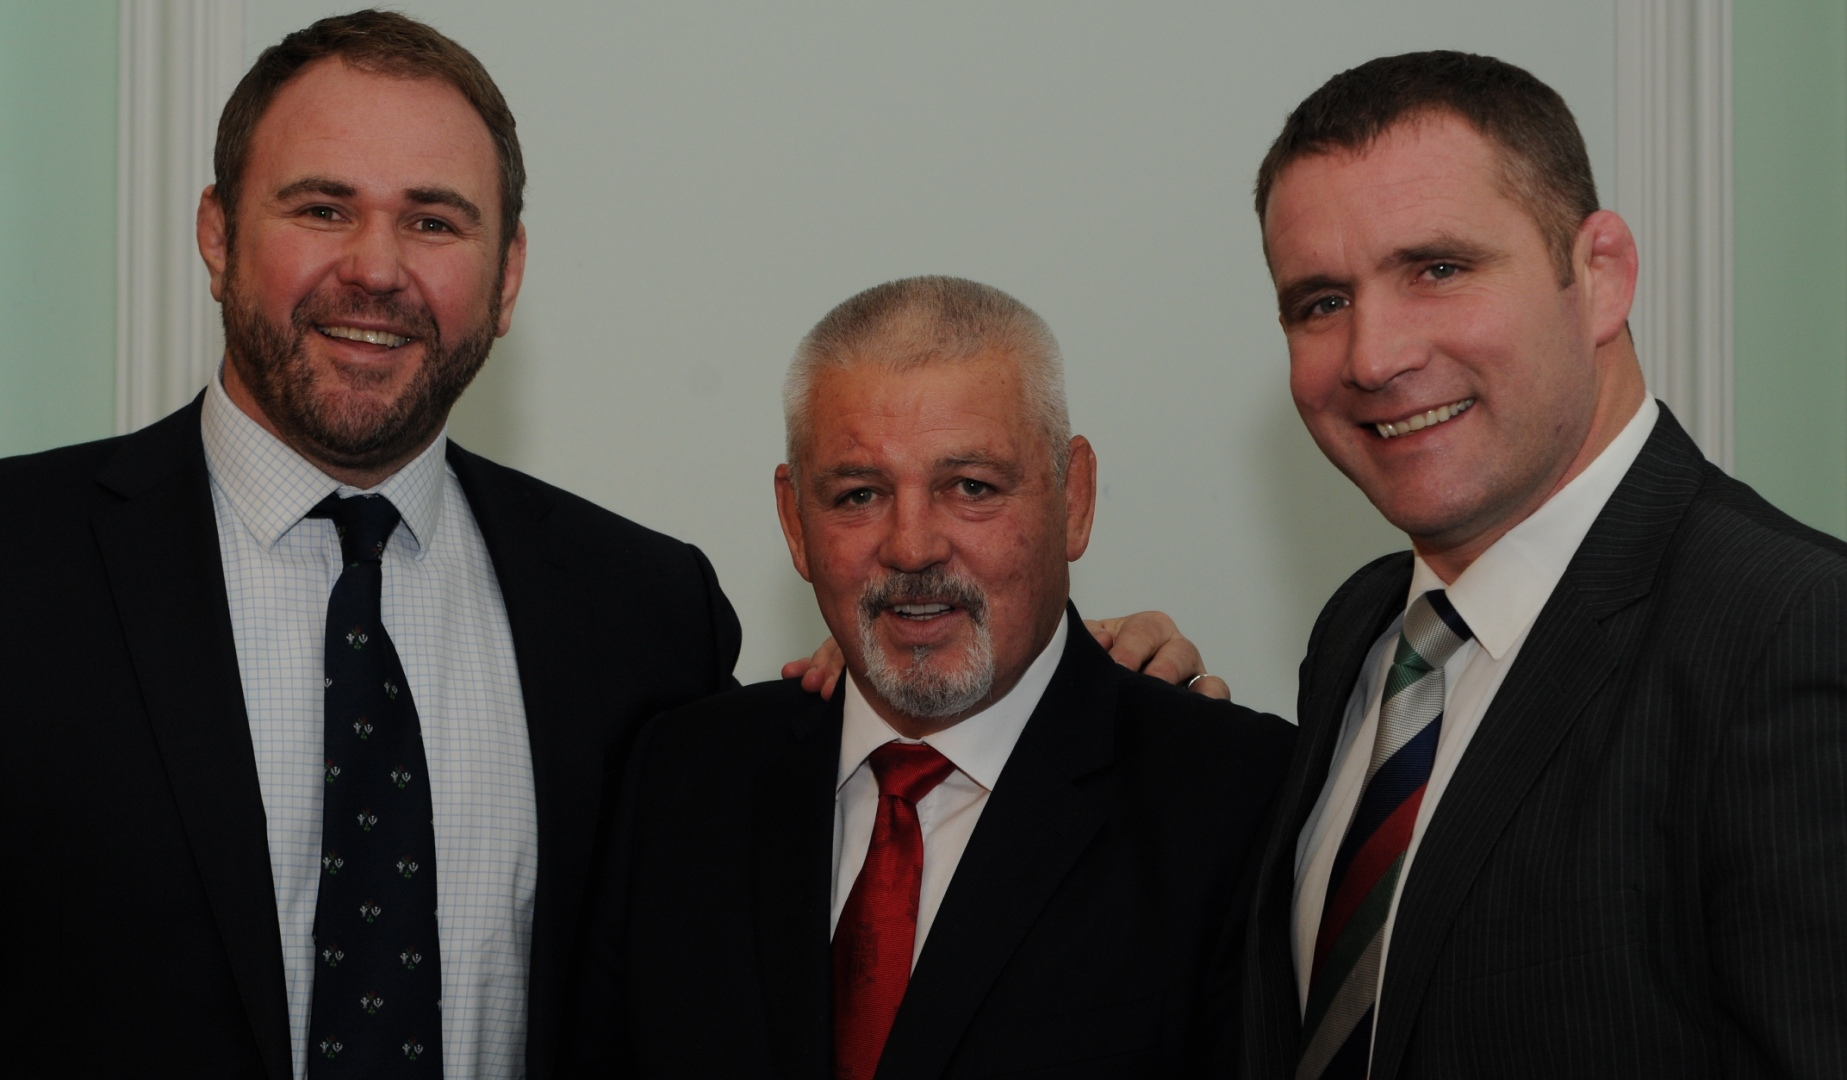 Legends gather to kick off 'Leading The Lions' Dinner Series in Cardiff